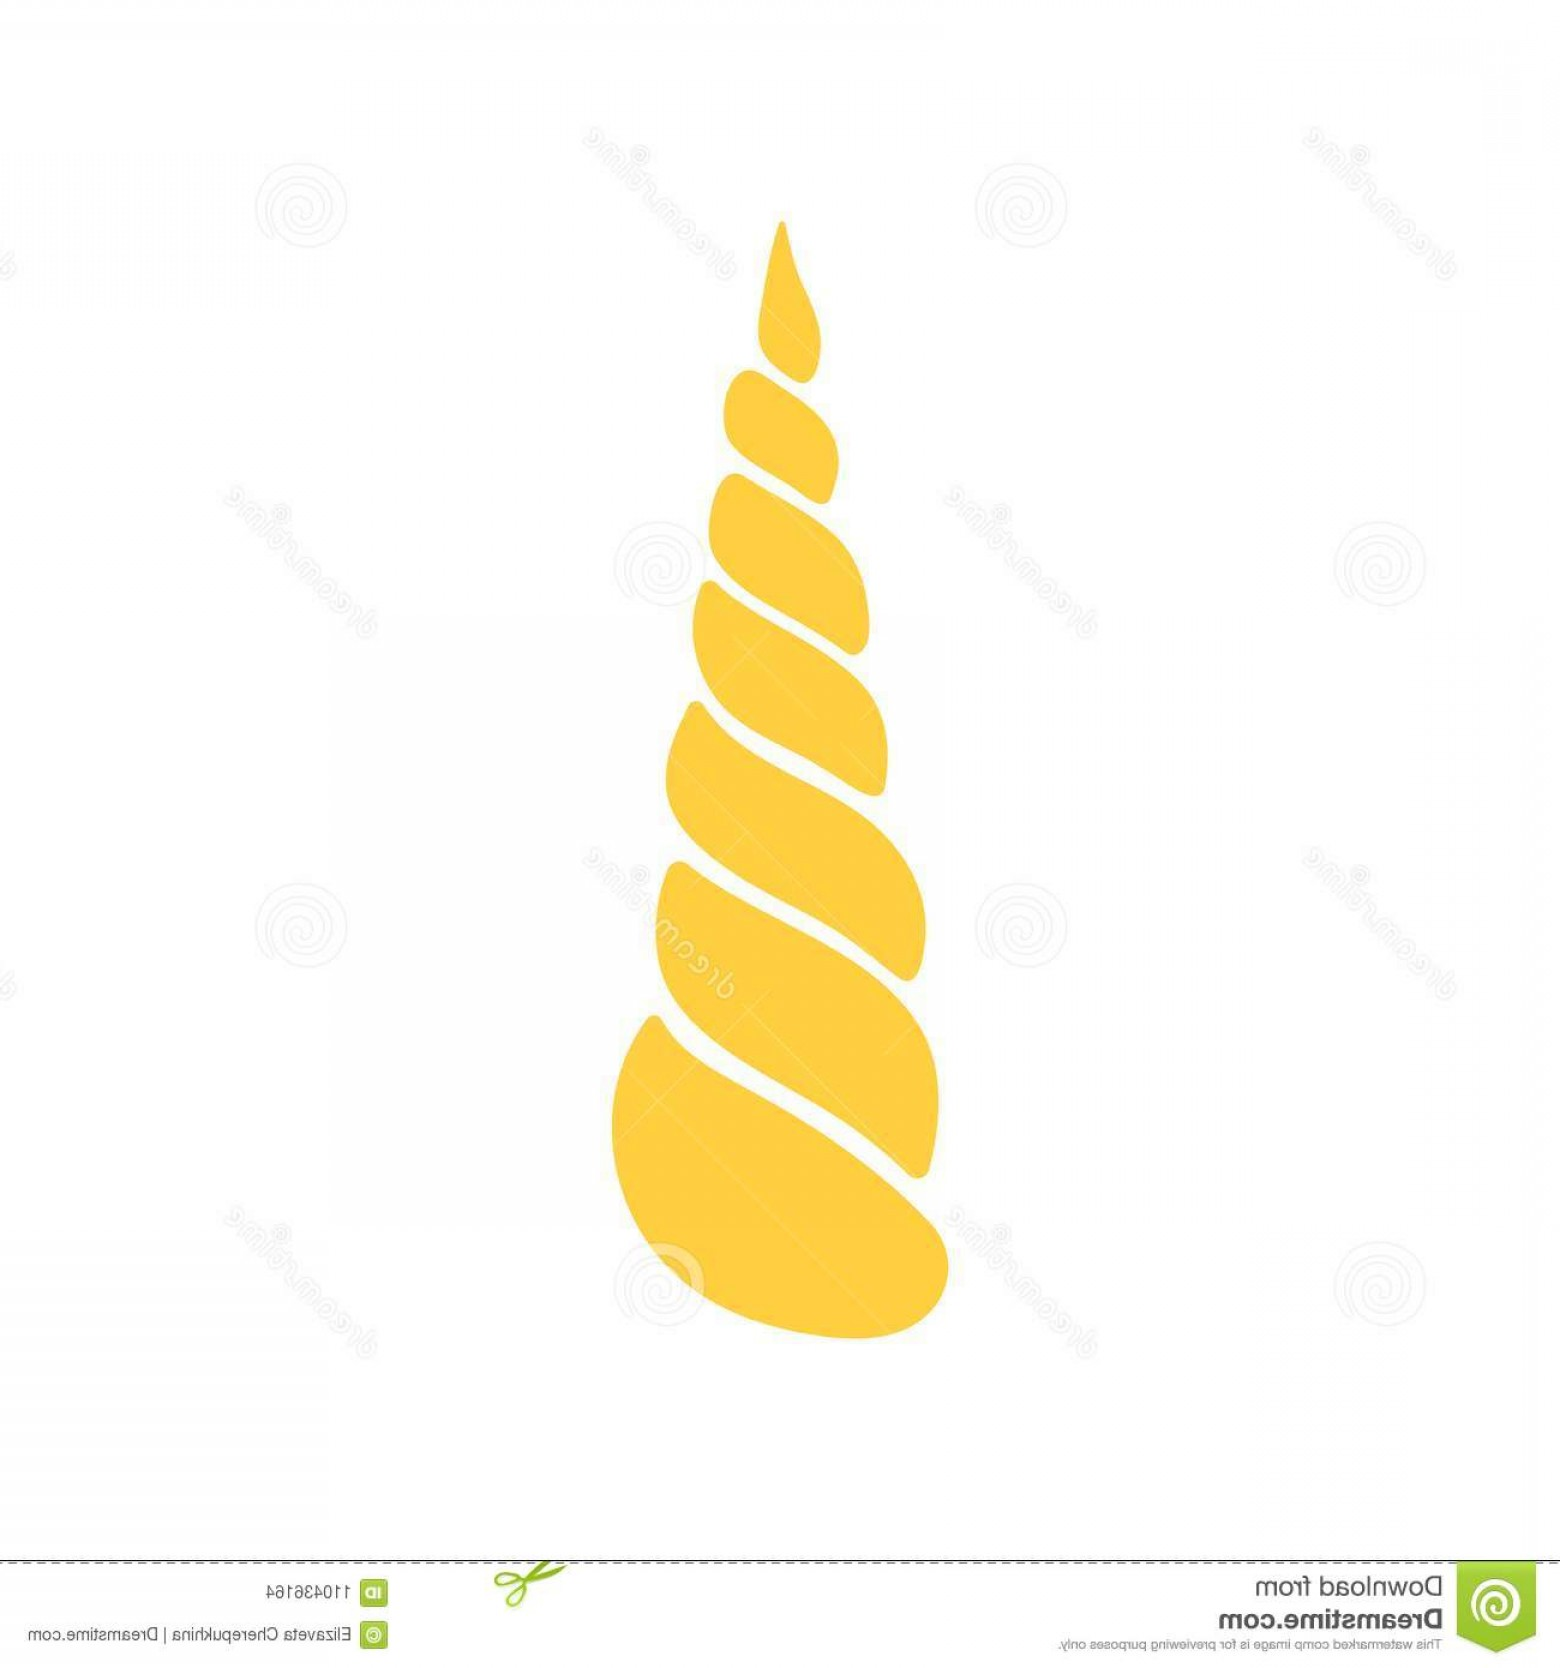 Unicorn Horn Vector: Cartoon Yellow Horn Unicorn Isolated White Background Vector Cartoon Yellow Horn Unicorn Isolated White Background Image